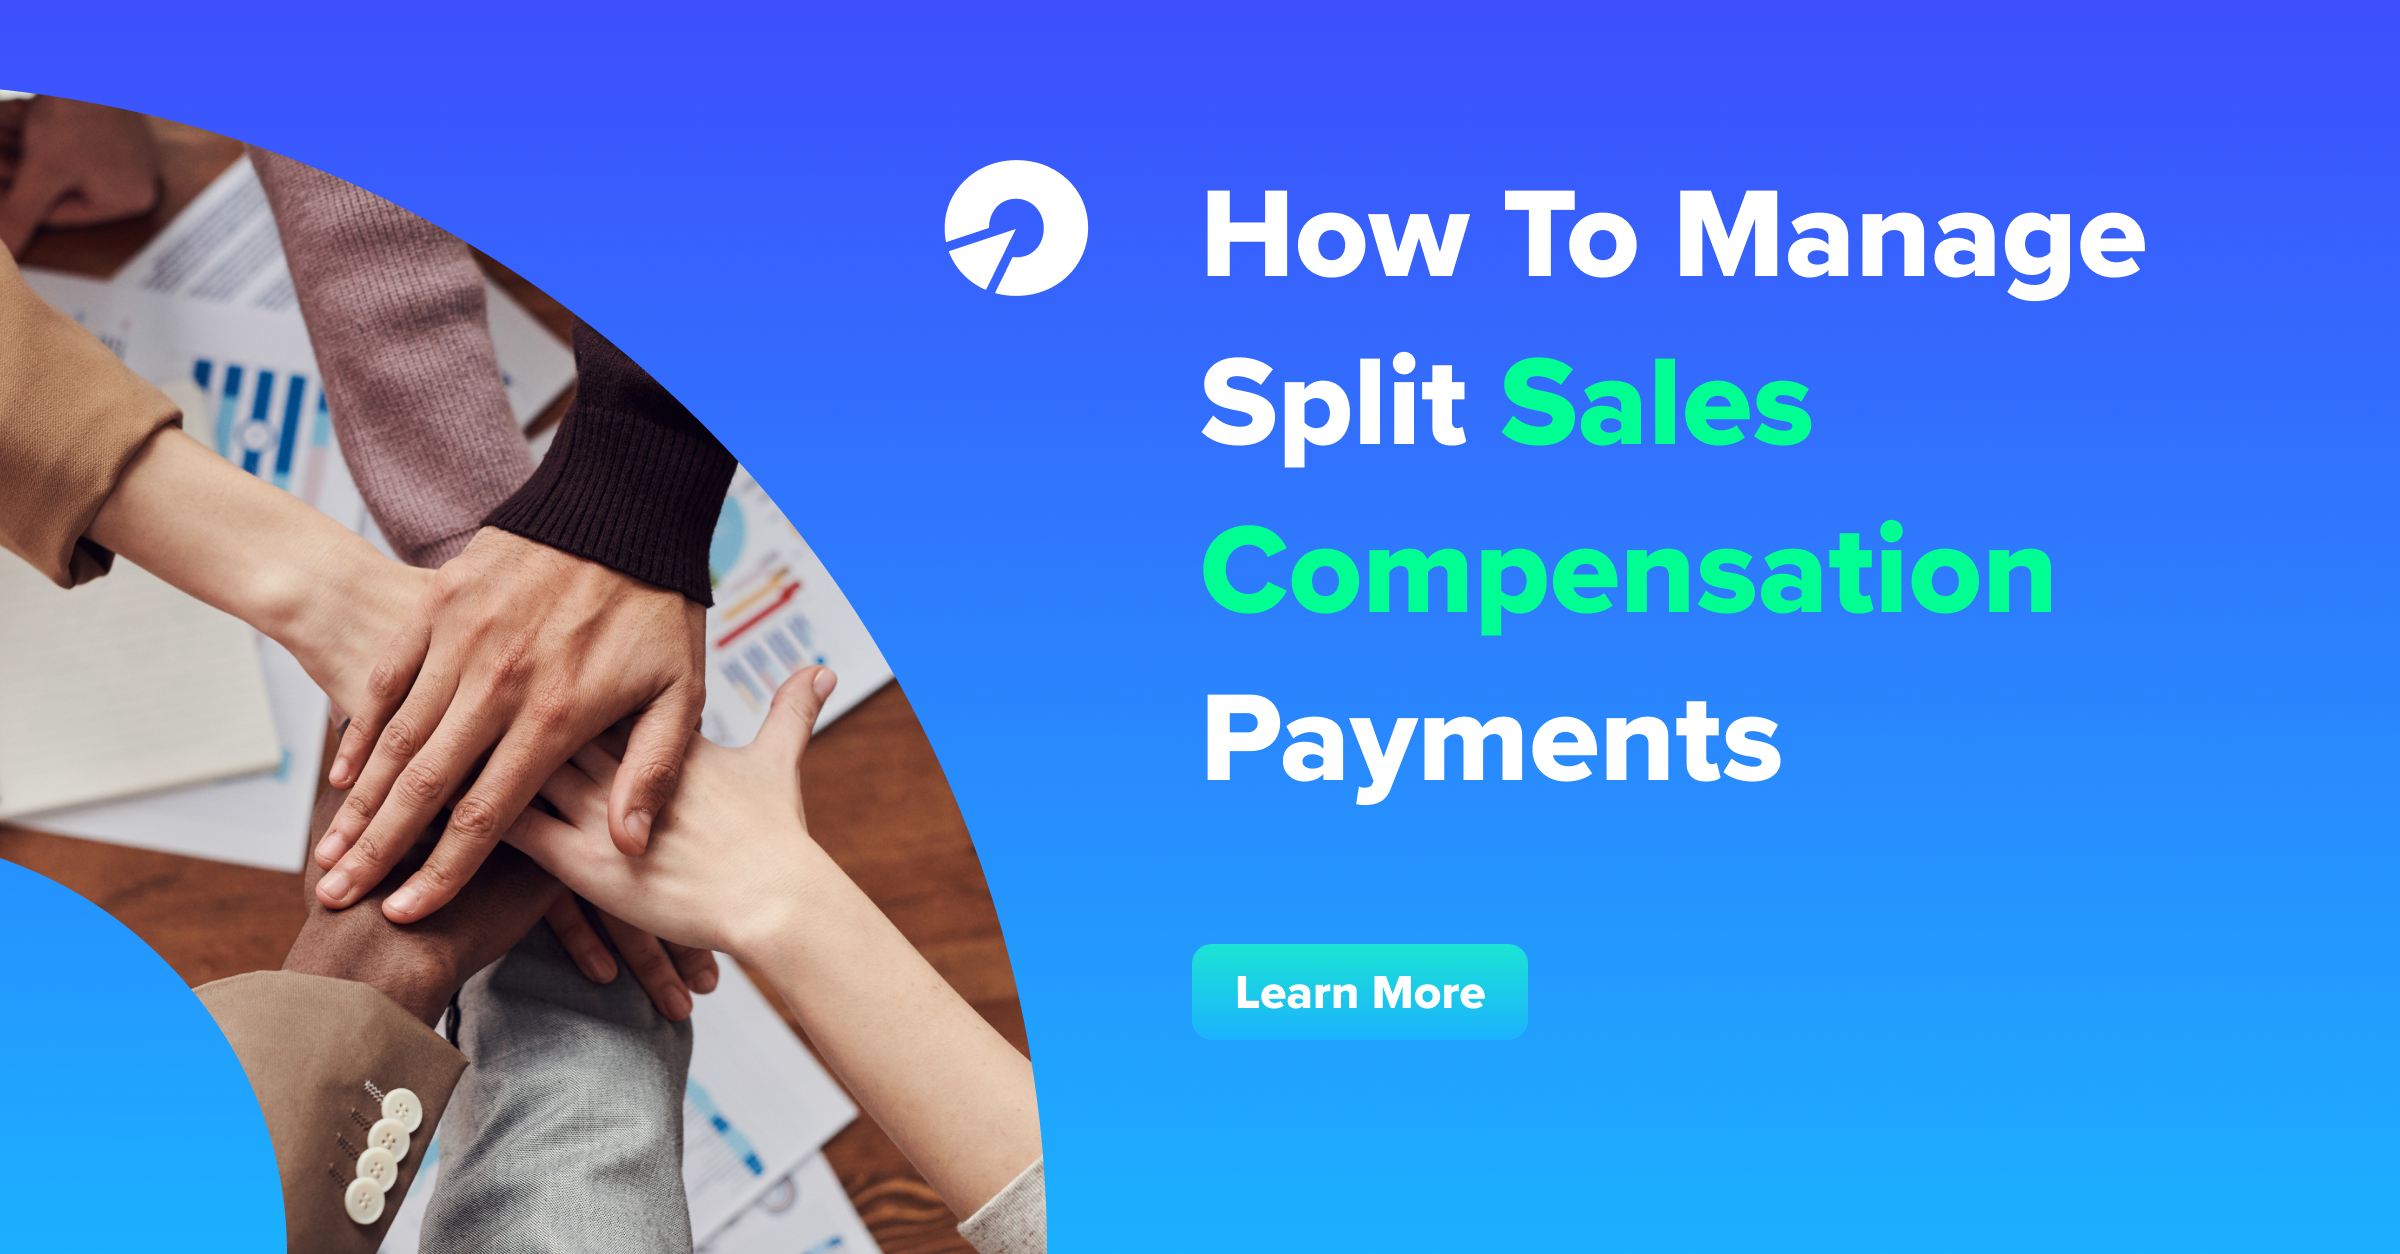 How To Manage Split Sales Compensation Payments